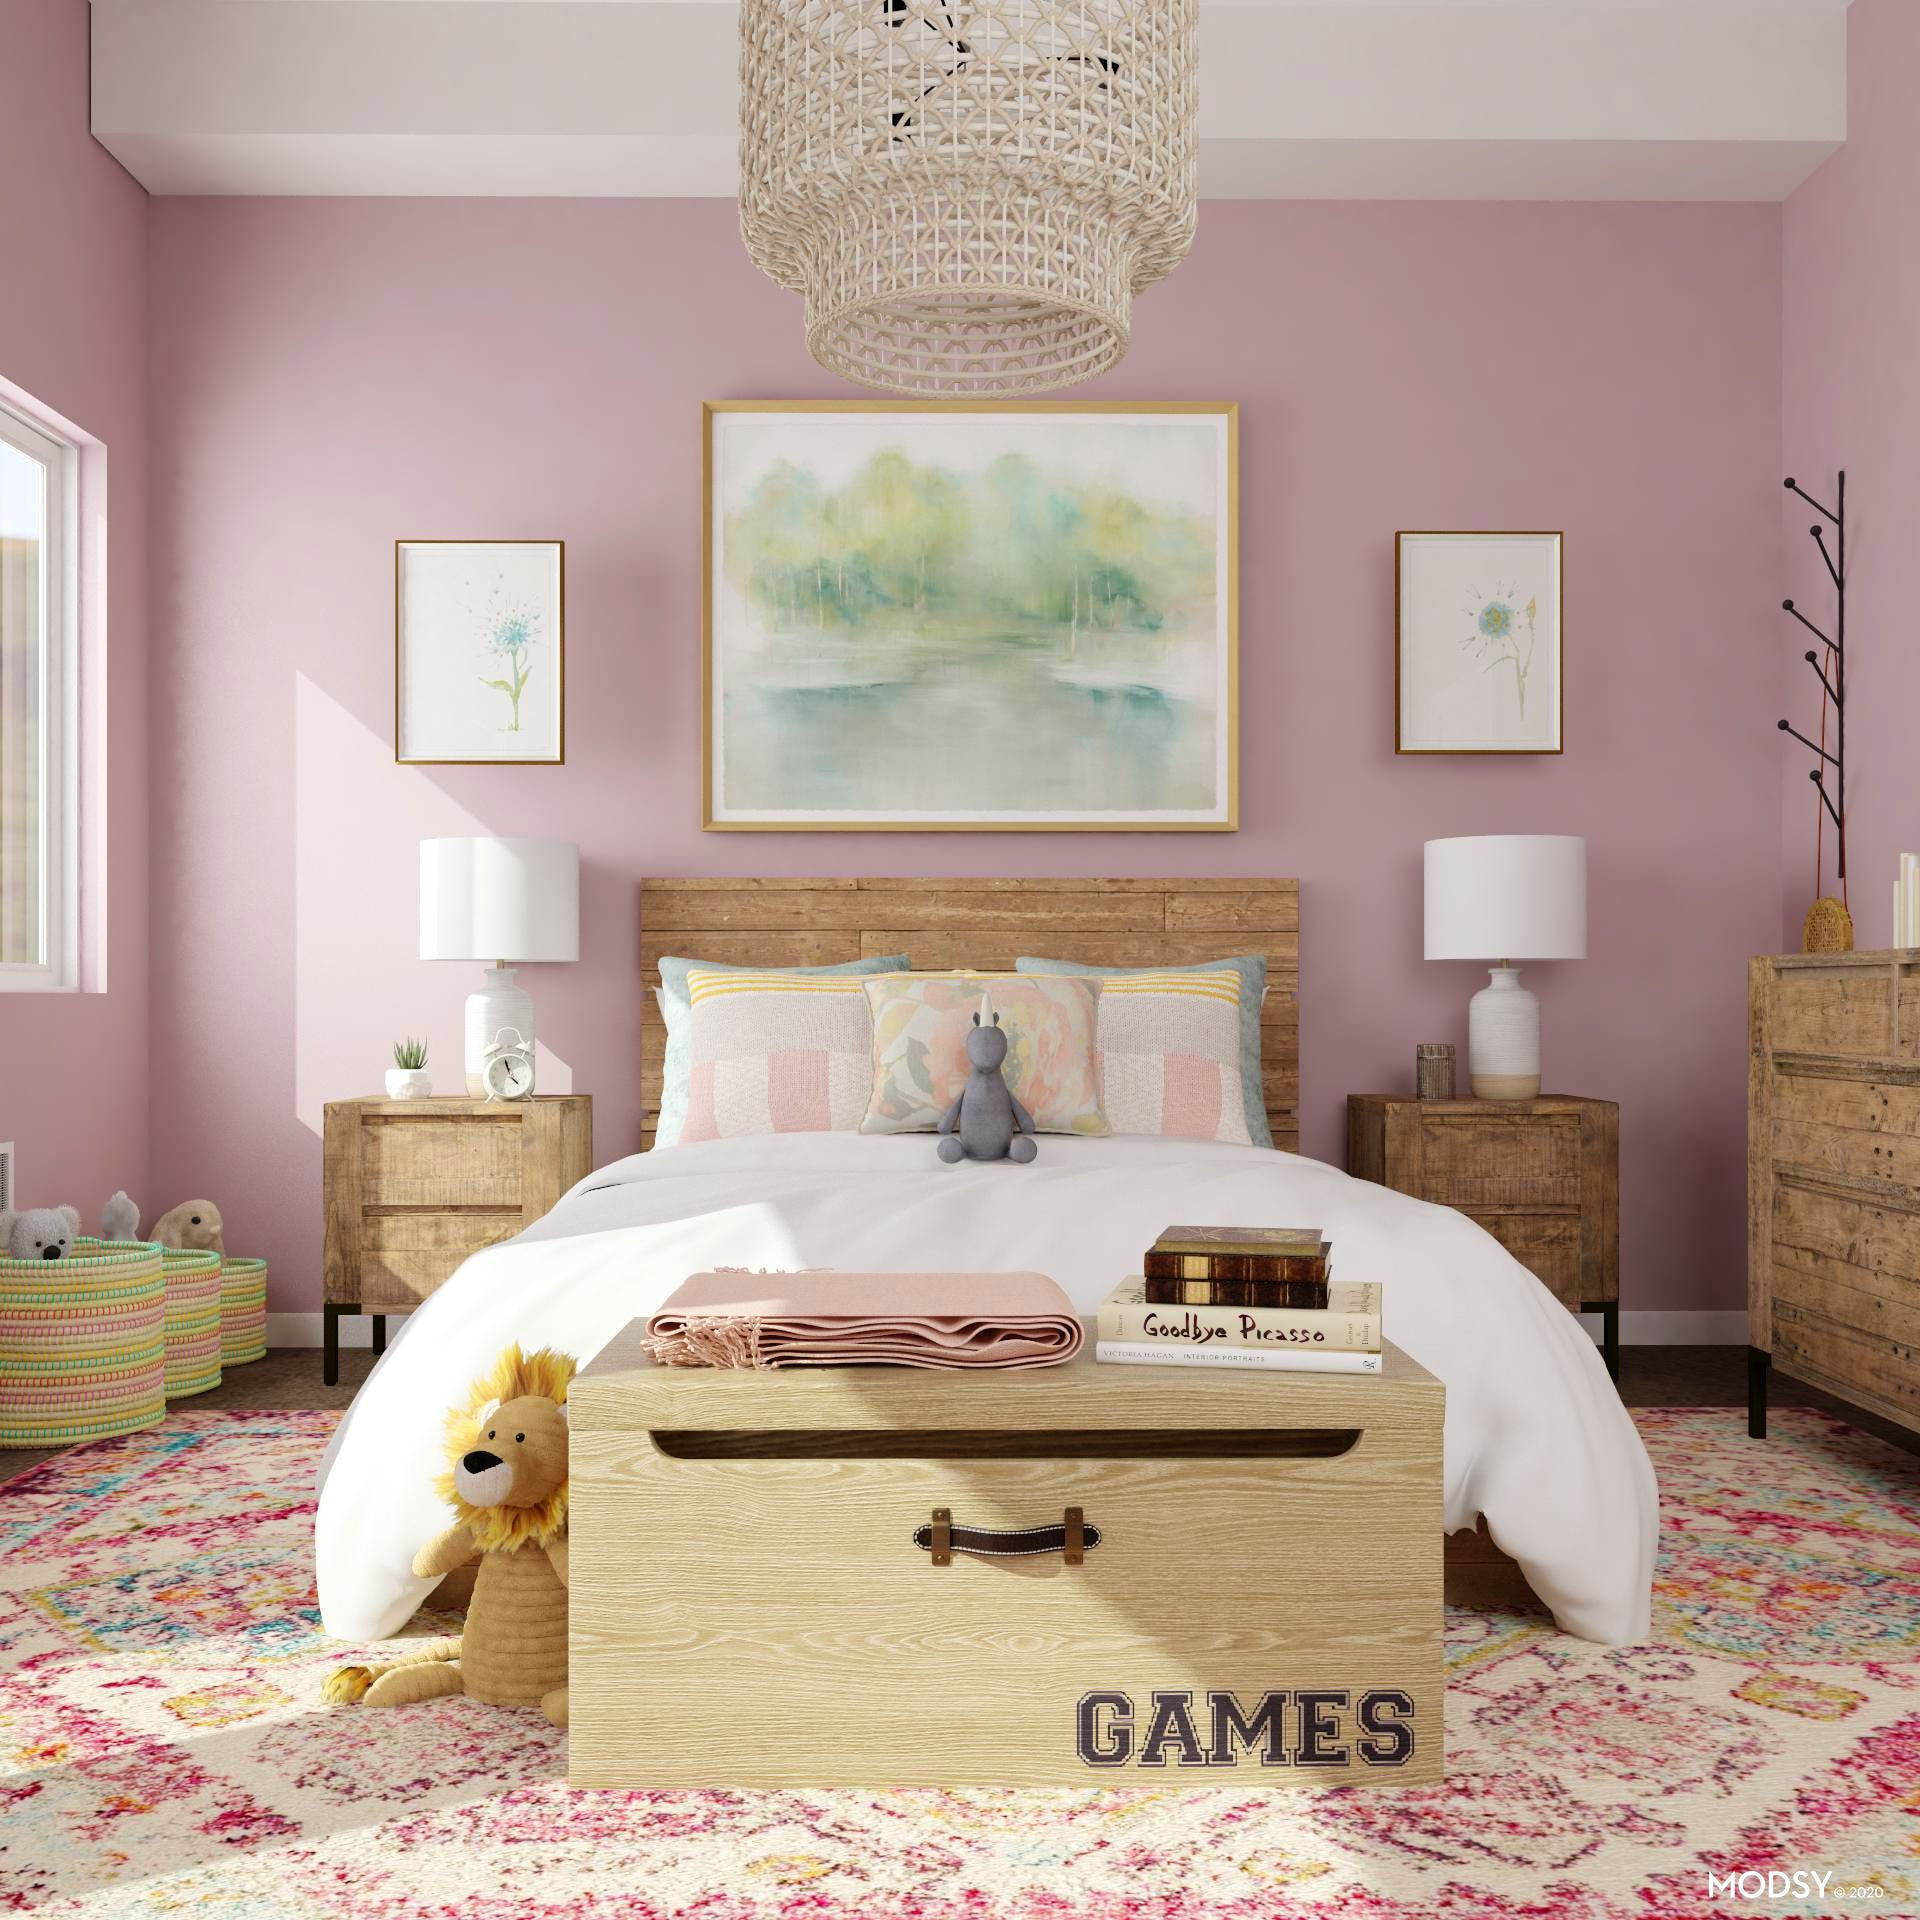 Rustic Meets Pastels: A Kid's Bedroom